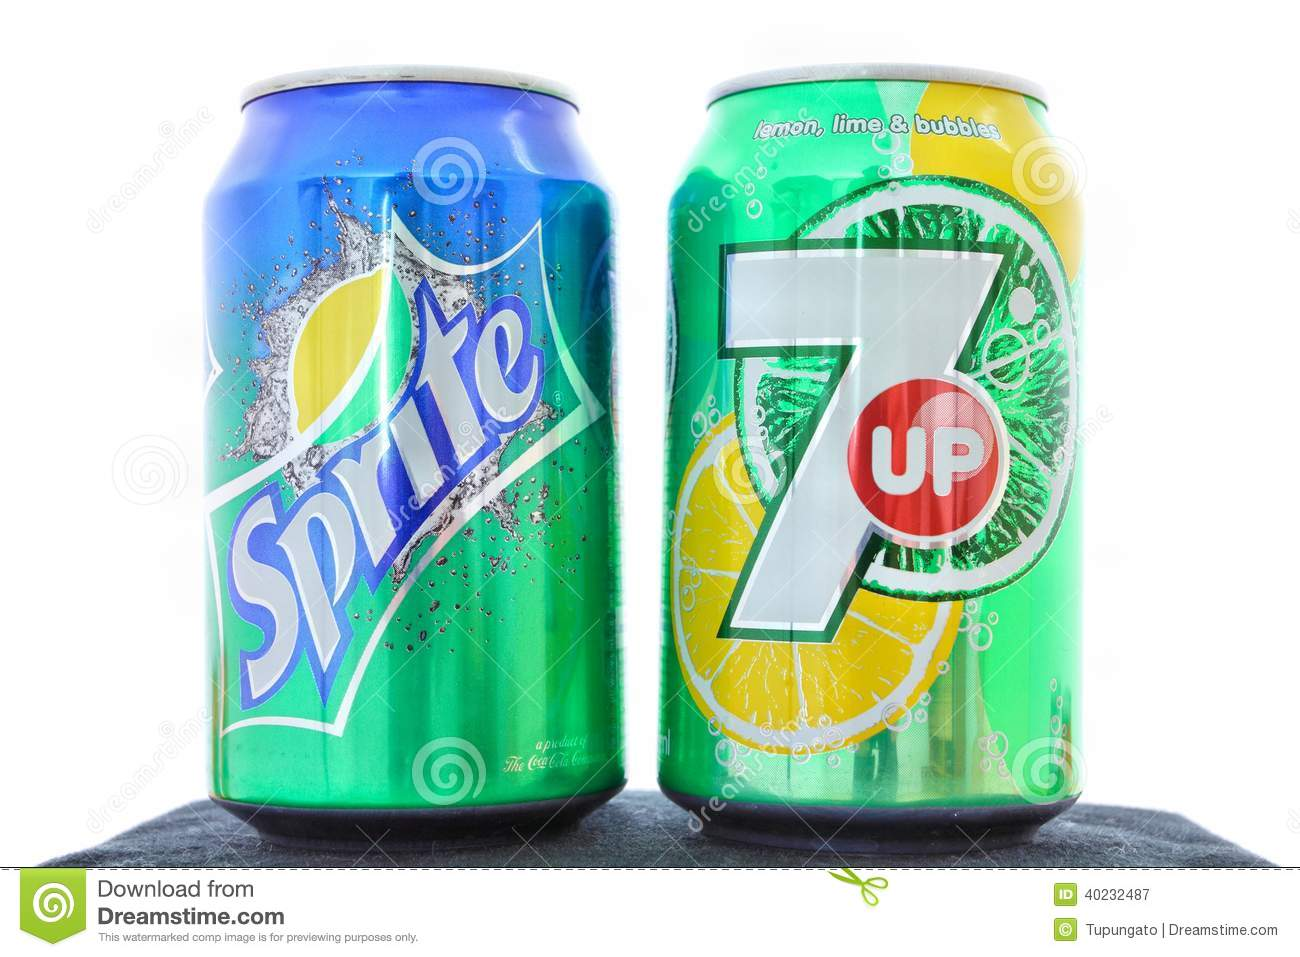 20, 2010: Sprite and 7 Up canned soft drinks together. These drinks ...